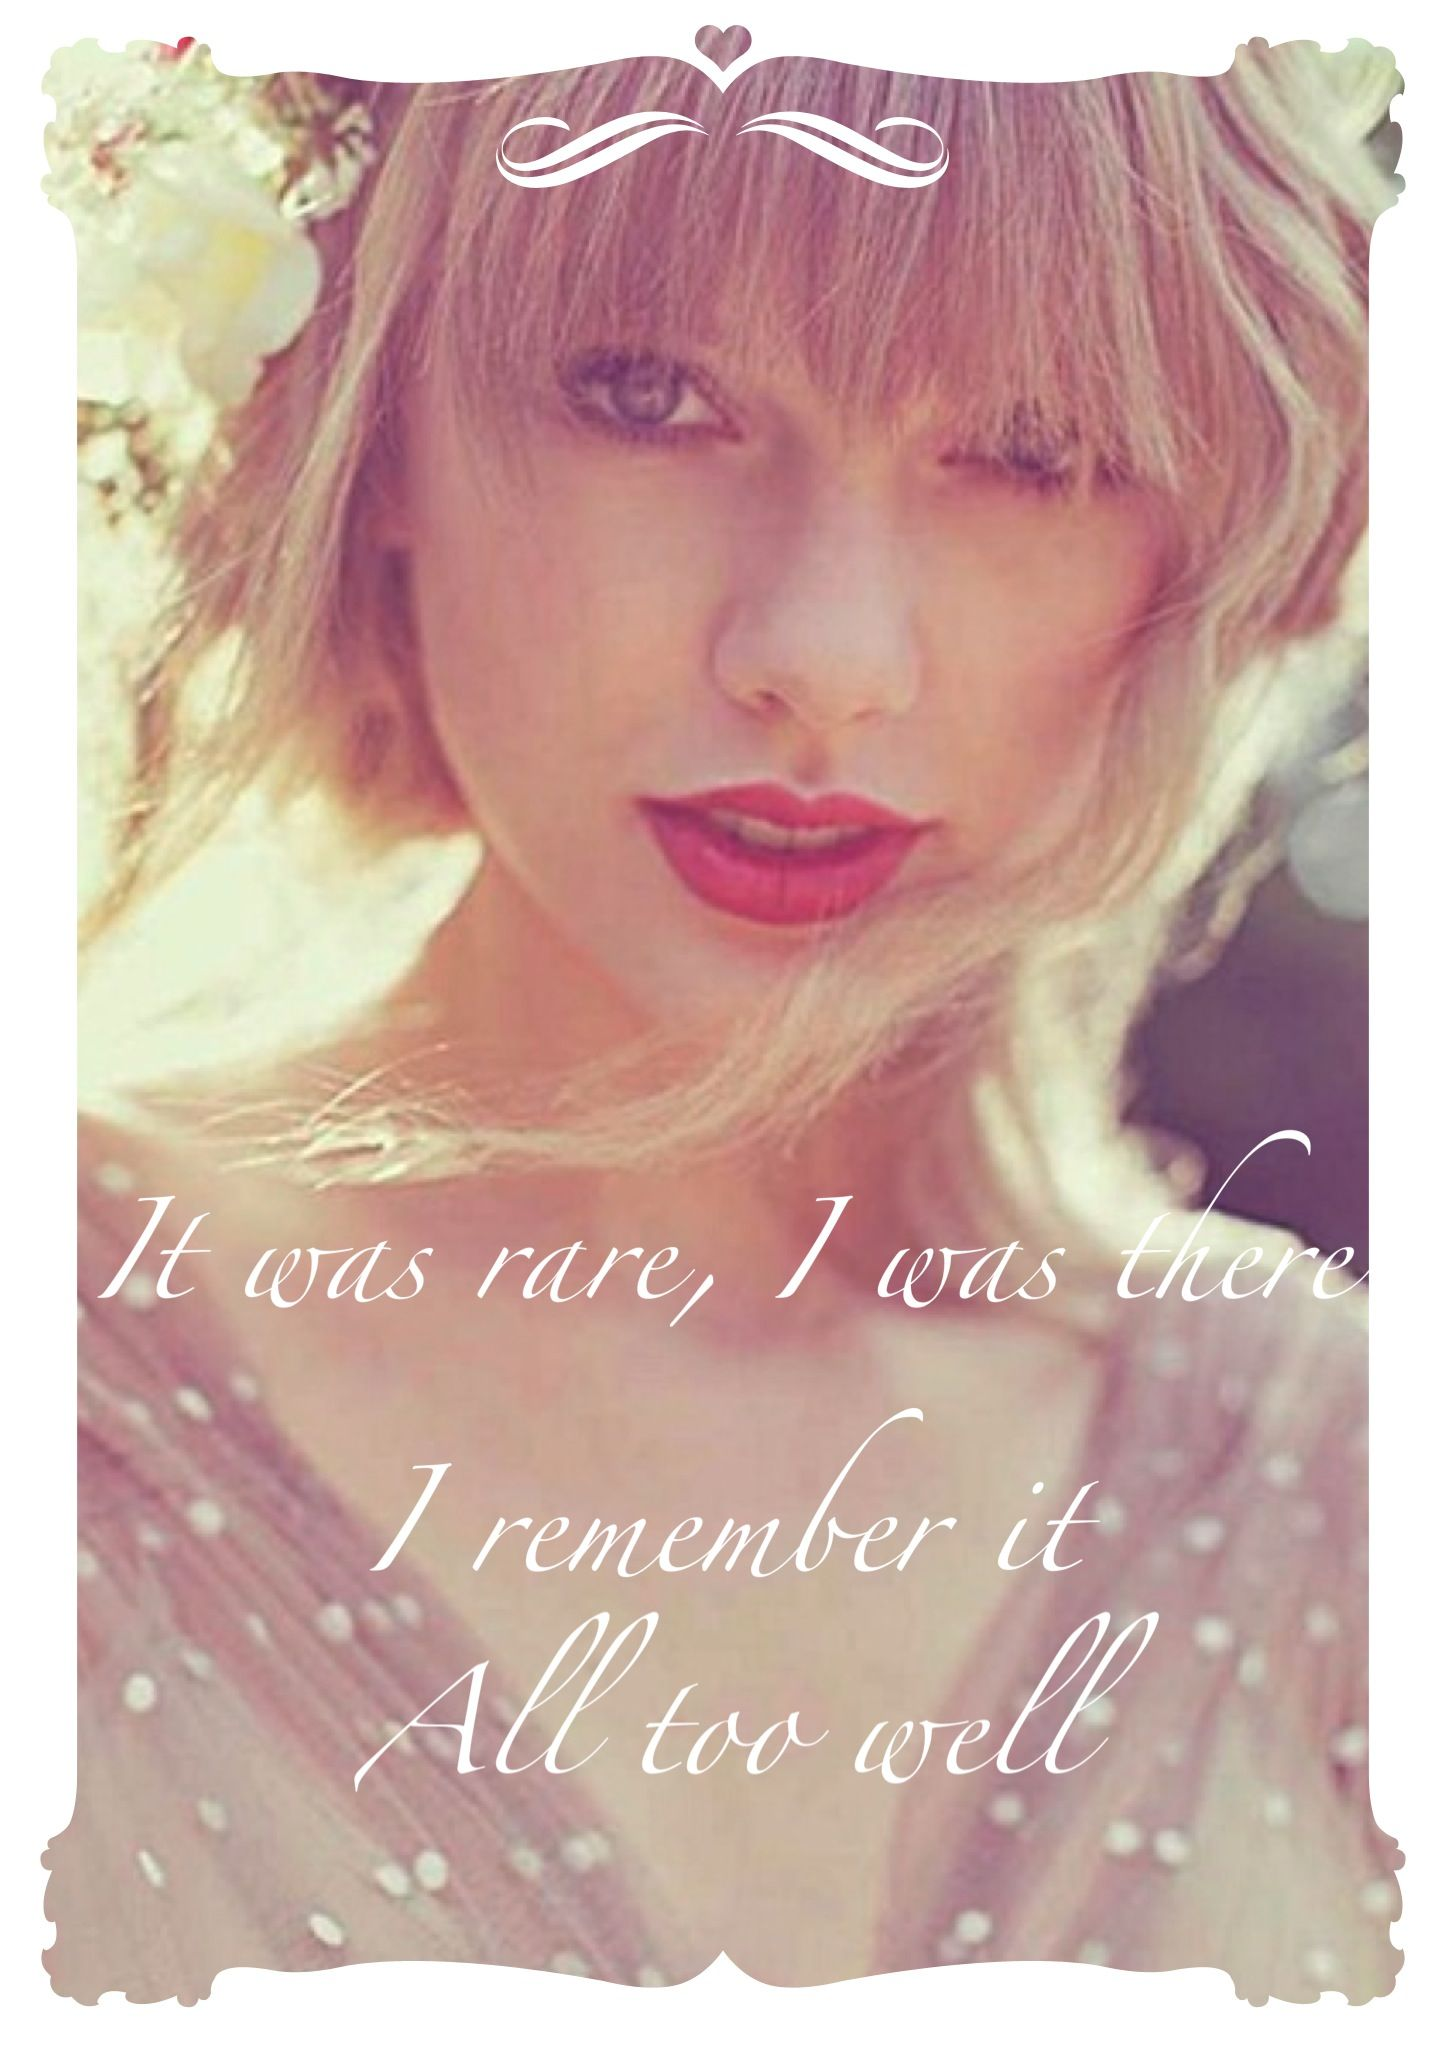 All Too Well Taylor Swift Song Quotes. QuotesGram